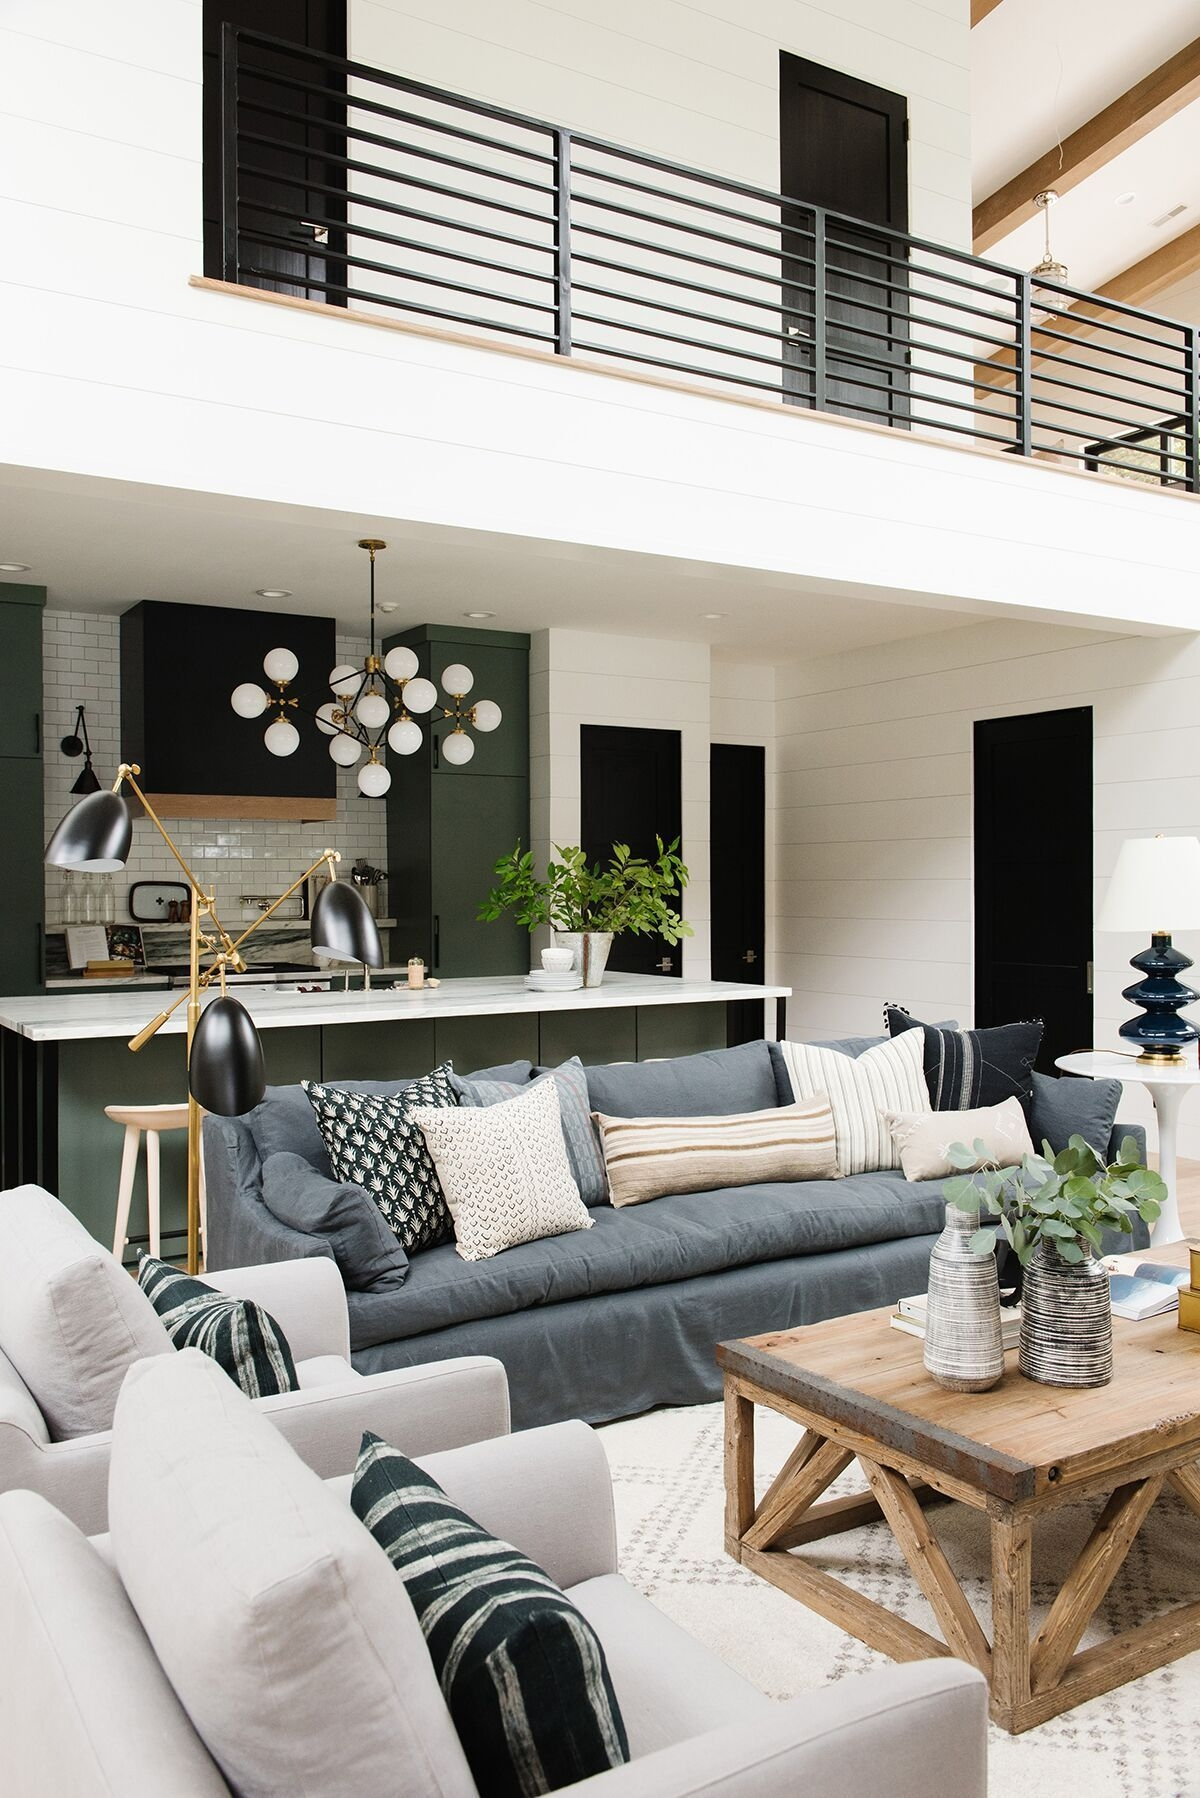 30+ Outstanding Home Interior Design Ideas To Make Your Home ...